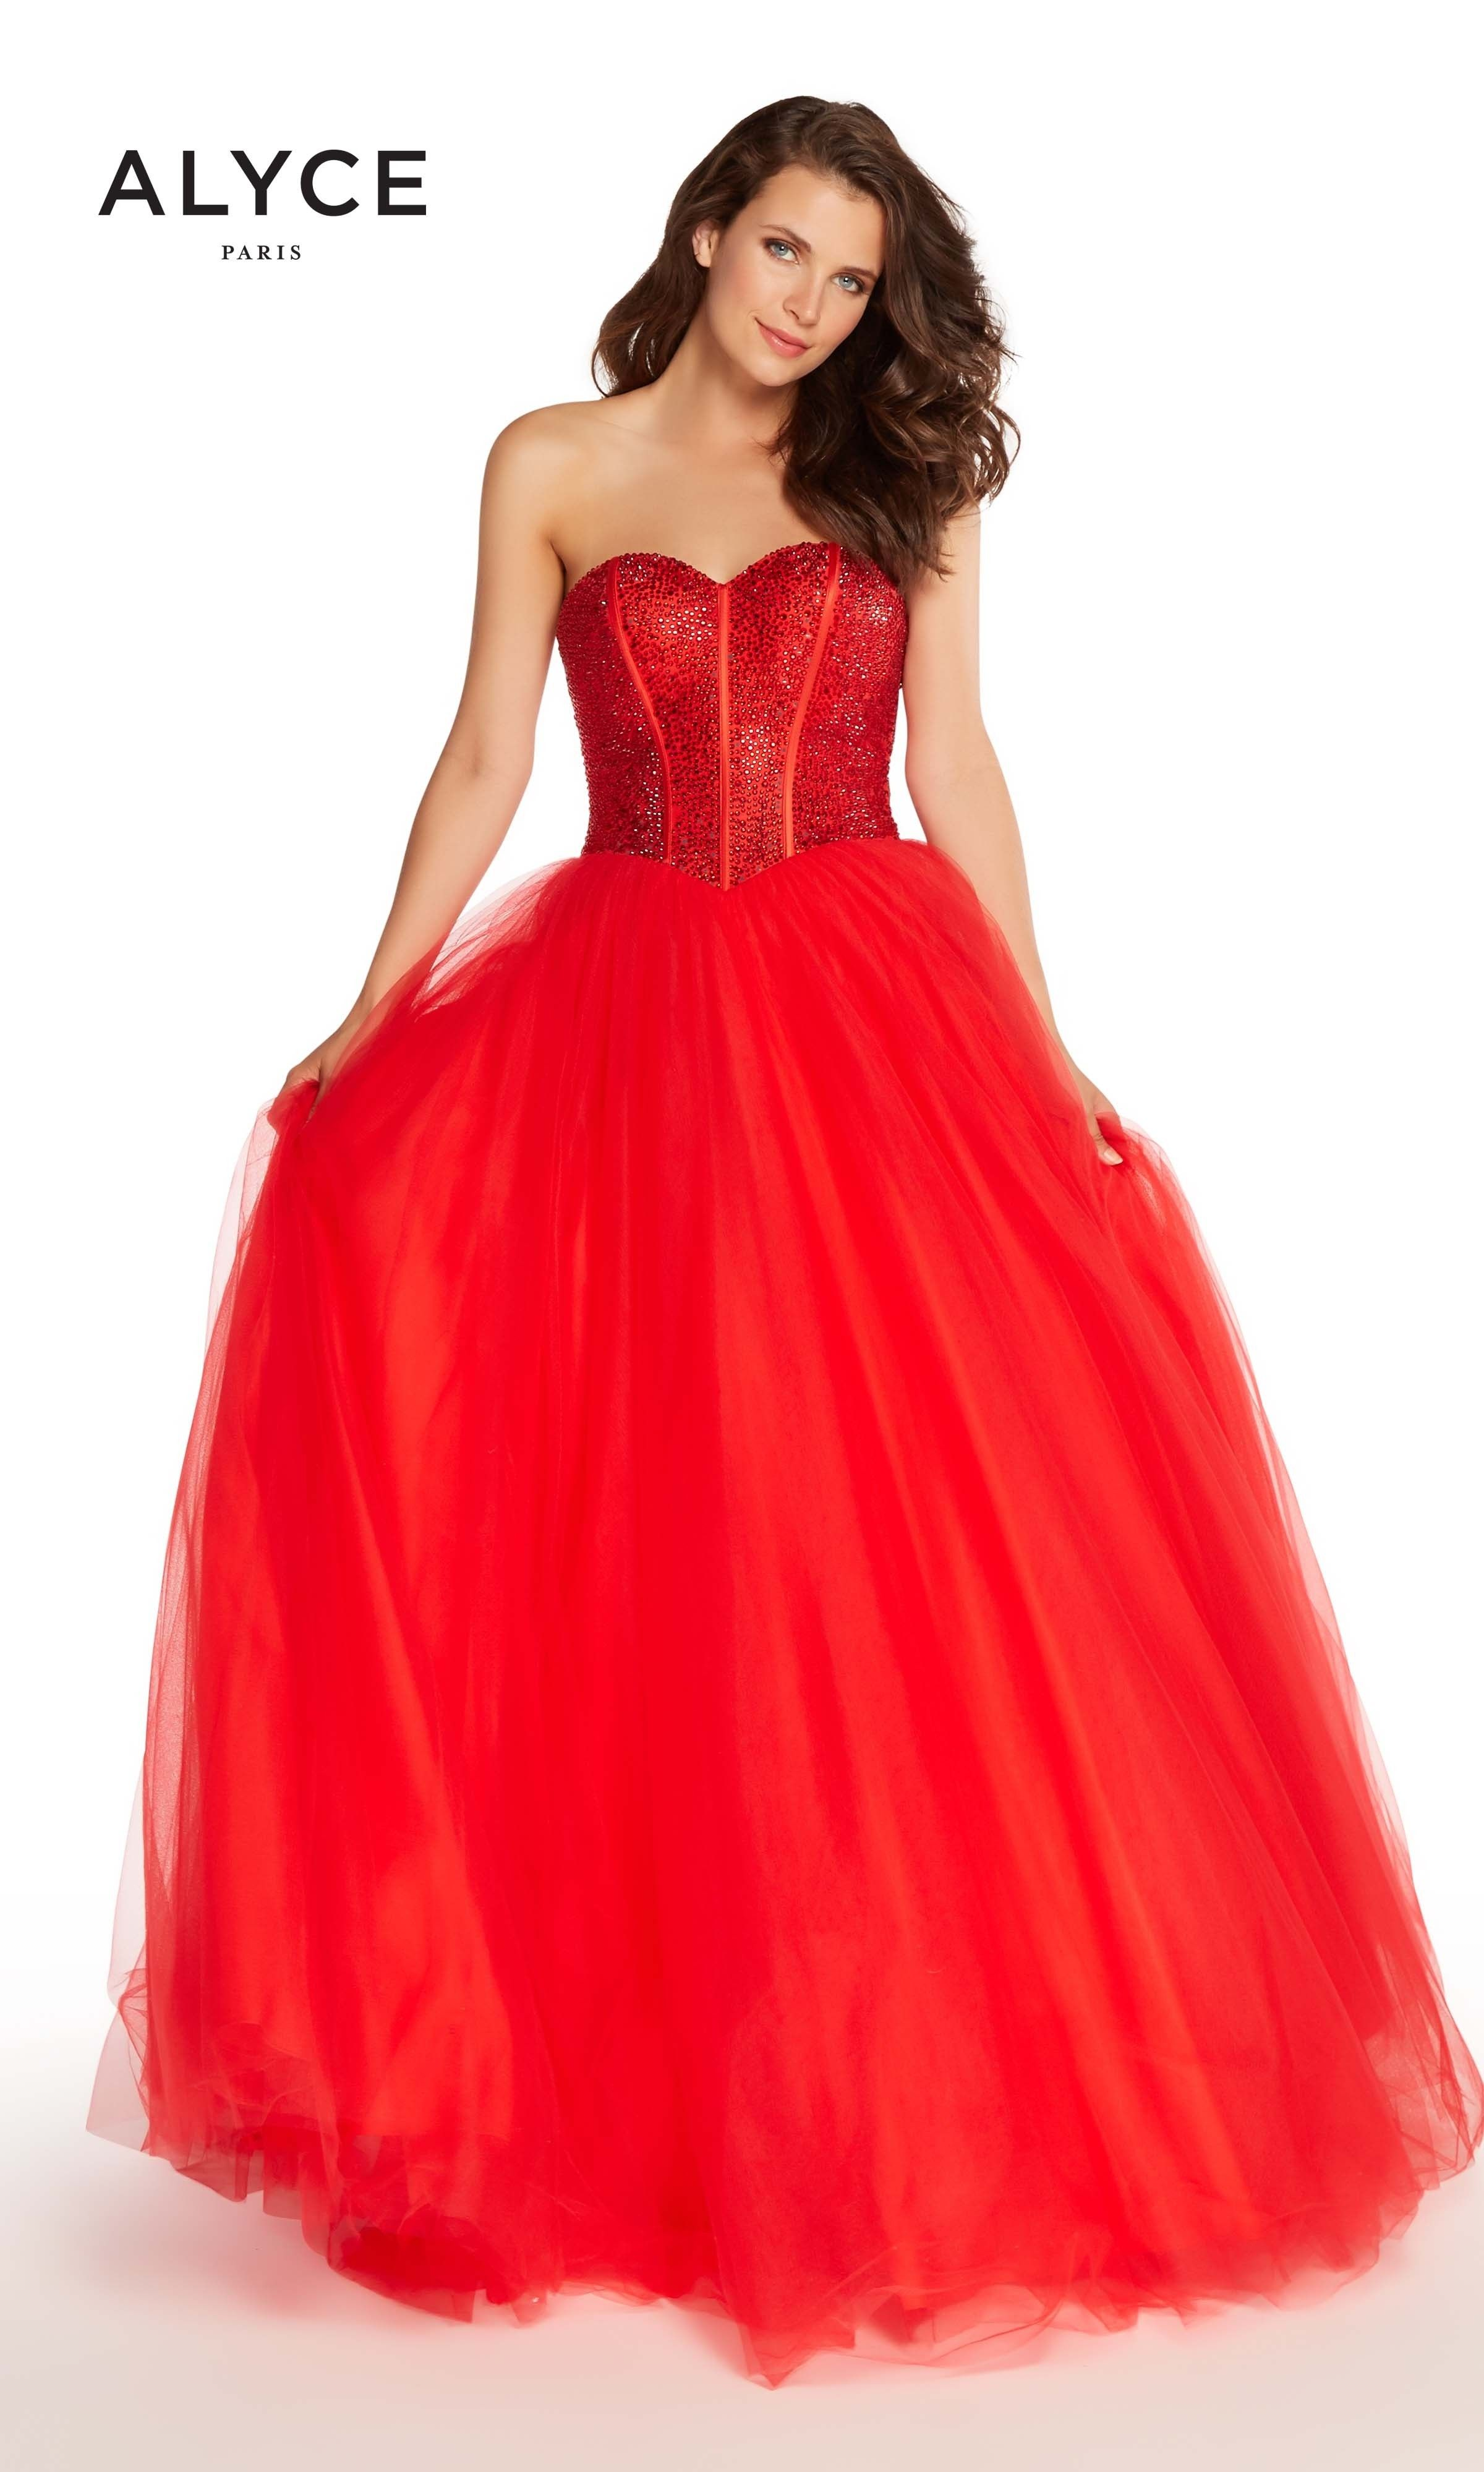 Extremely Full Ball Gowns